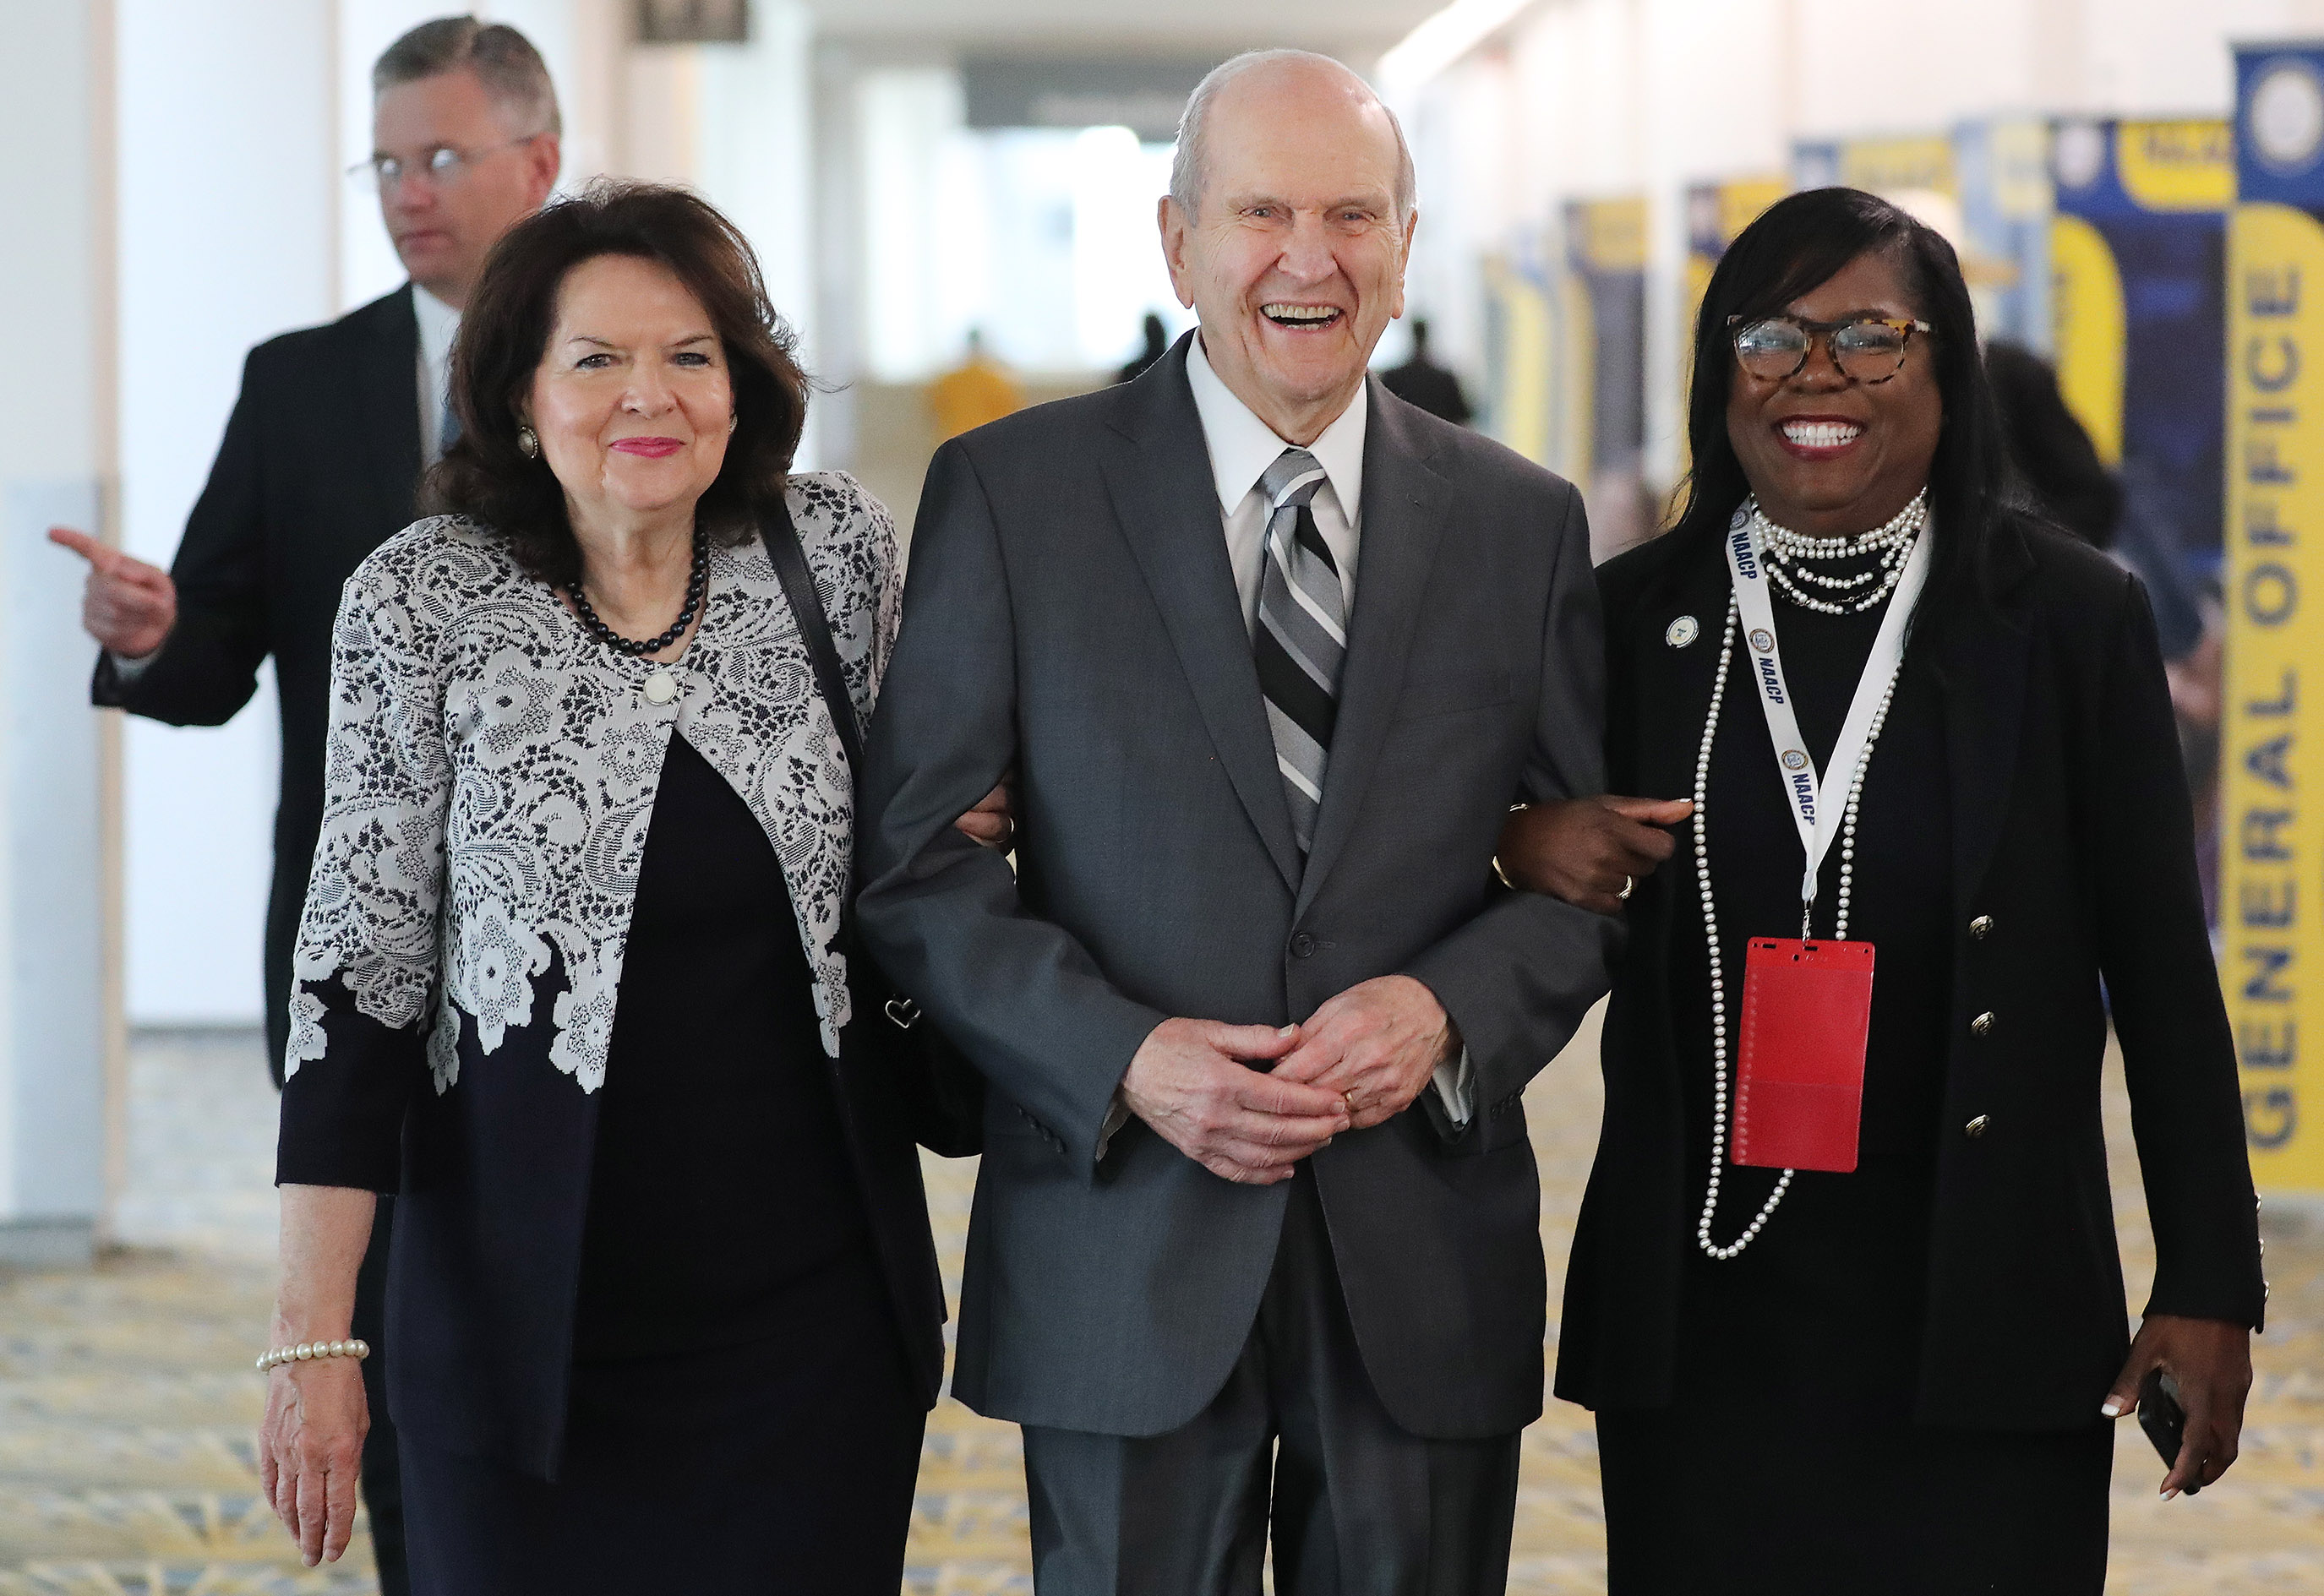 President Russell M. Nelson of The Church of Jesus Christ of Latter-day Saints and his wife, Sister Wendy Nelson, with the Rev. Theresa Deer while meeting with NAACP leaders at the 110th annual national convention for the National Association for the Advancement of Colored People in Detroit, Michigan, on Sunday, July 21, 2019.